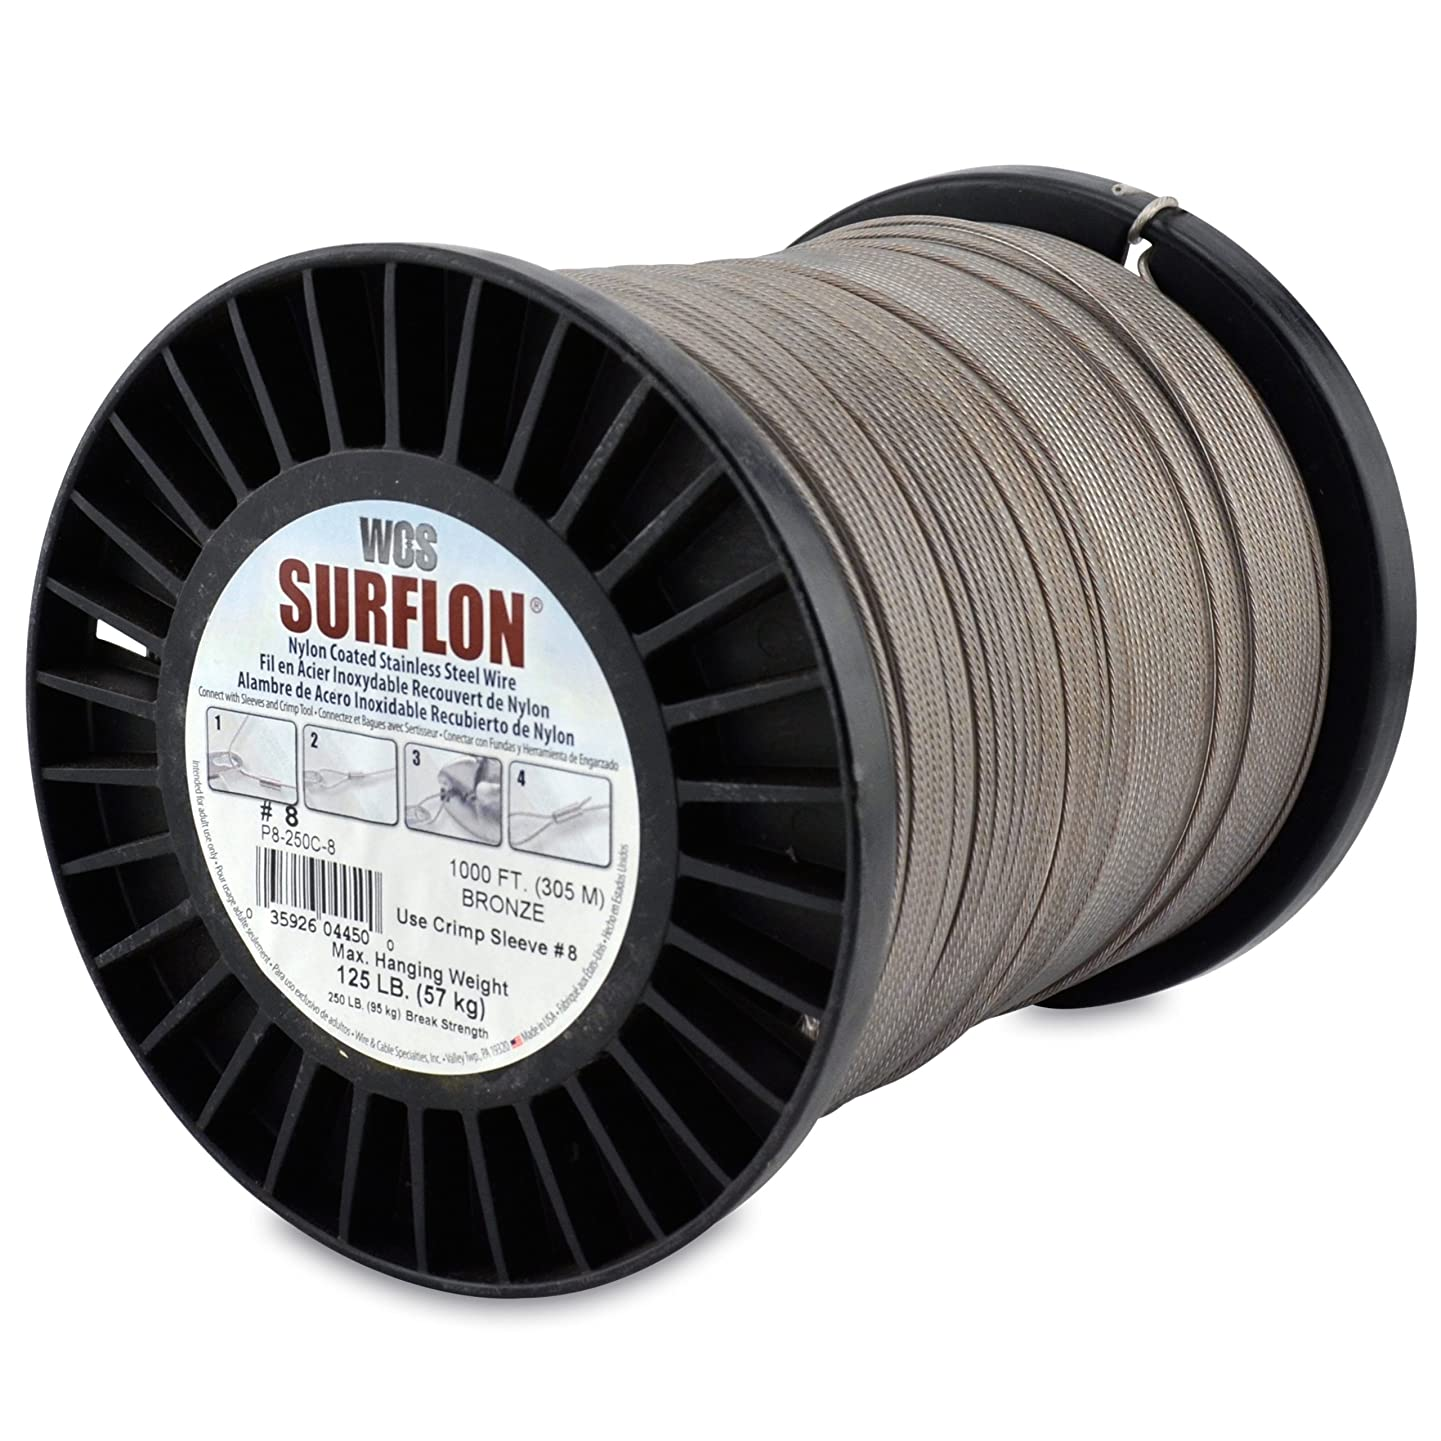 Surflon Size 8-125-Pound Break 1000-Feet Crimping Picture Wire Nylon Coated Stainless Steel Bronze